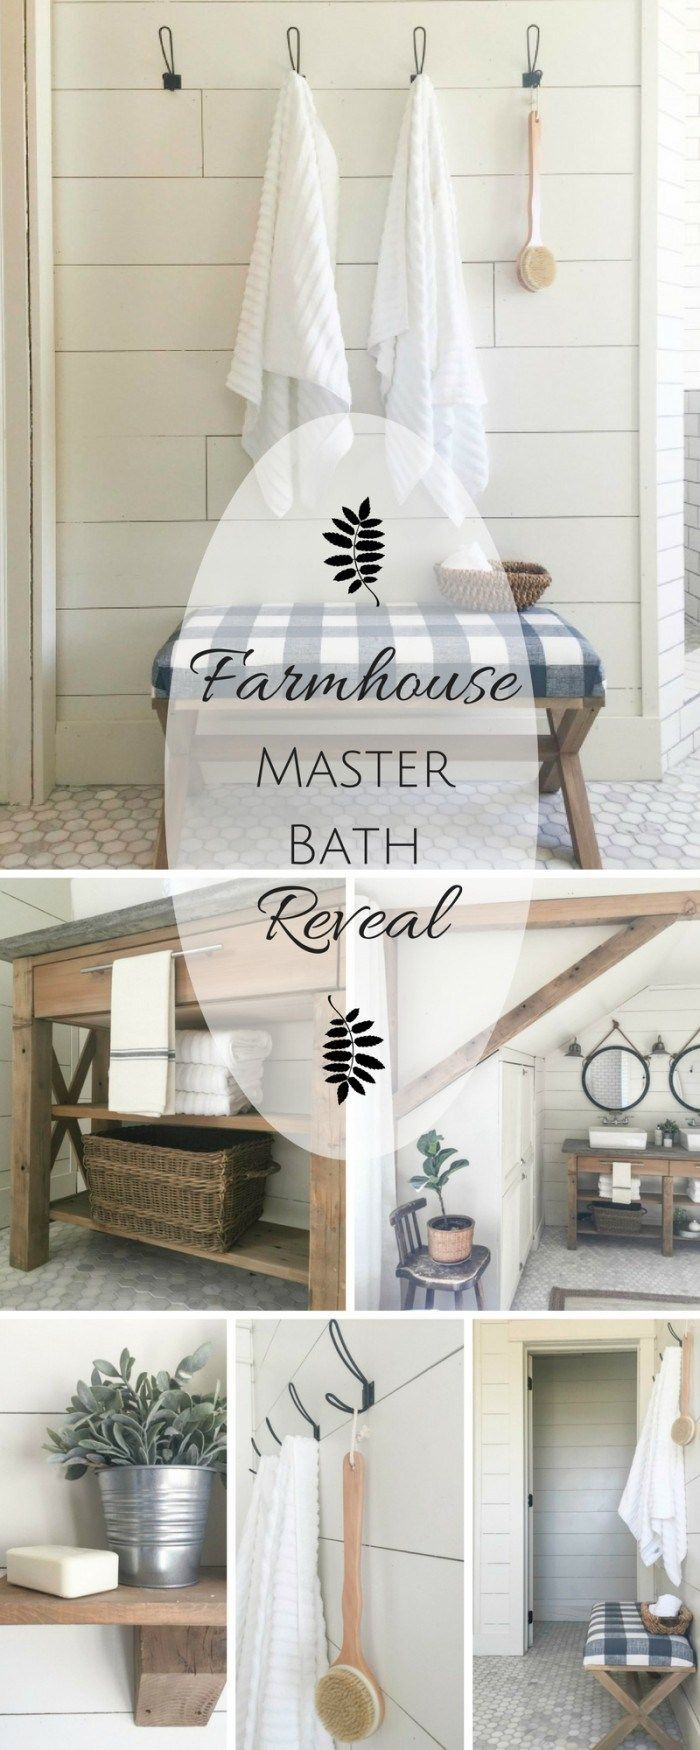 This farmhouse style master bathroom makeover is so amazing!  I cant believe they did everything themselves!